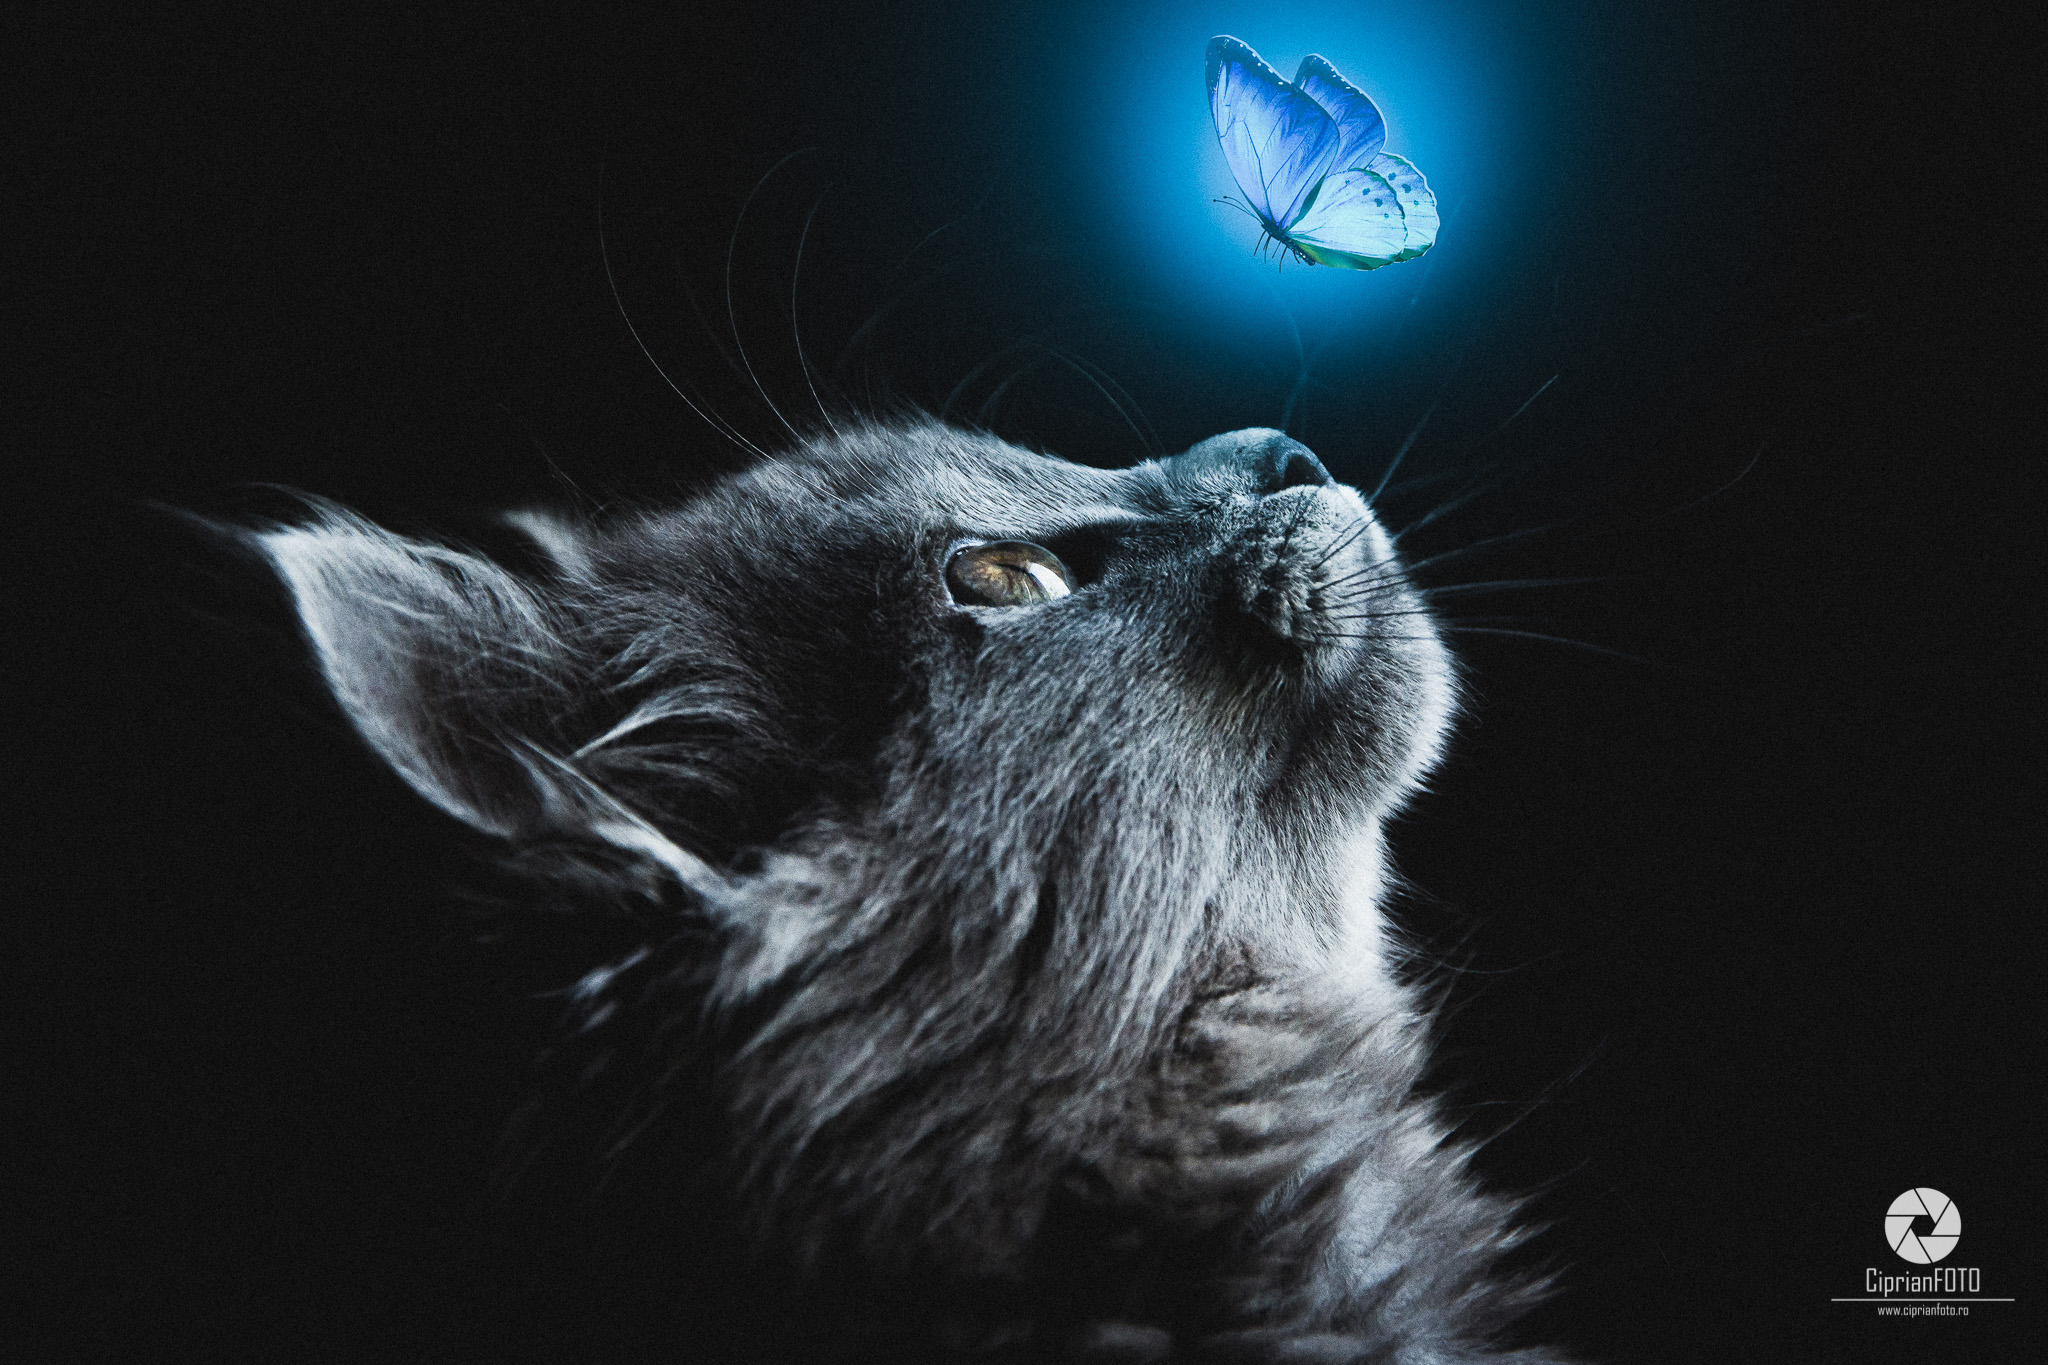 Photoshop Manipulation Tutorial, Cat and blue butterfly, CiprianFOTO